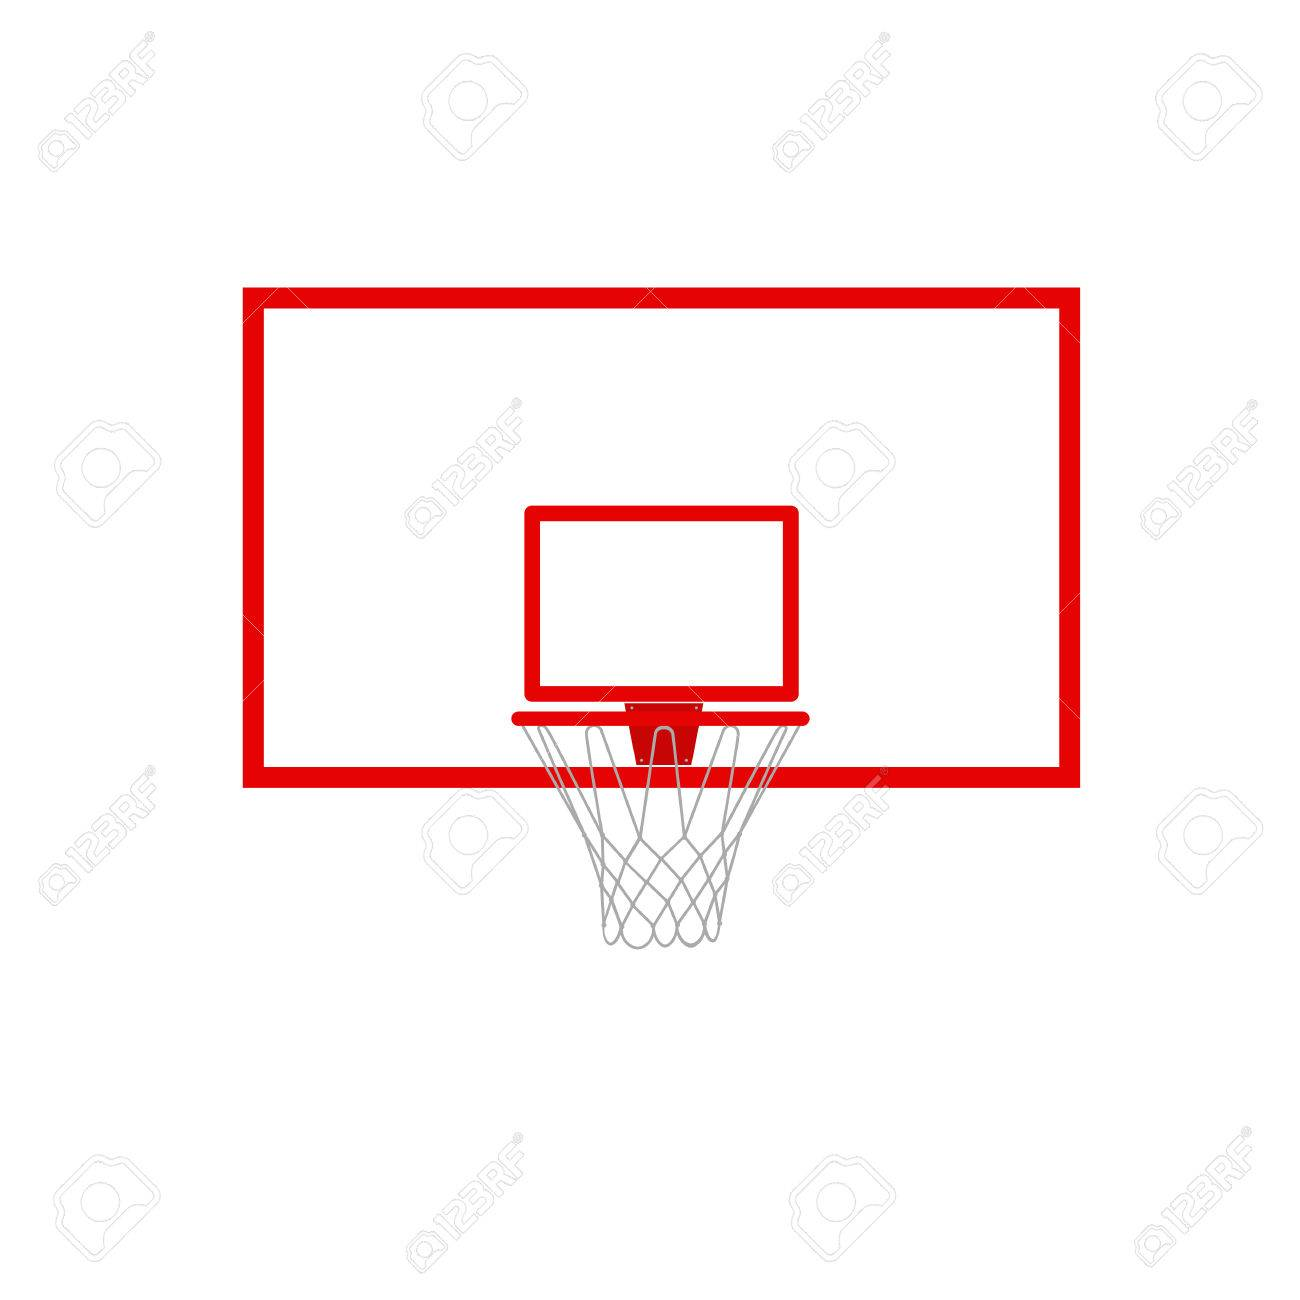 A vector illustration of a basketball hoop and backboard.